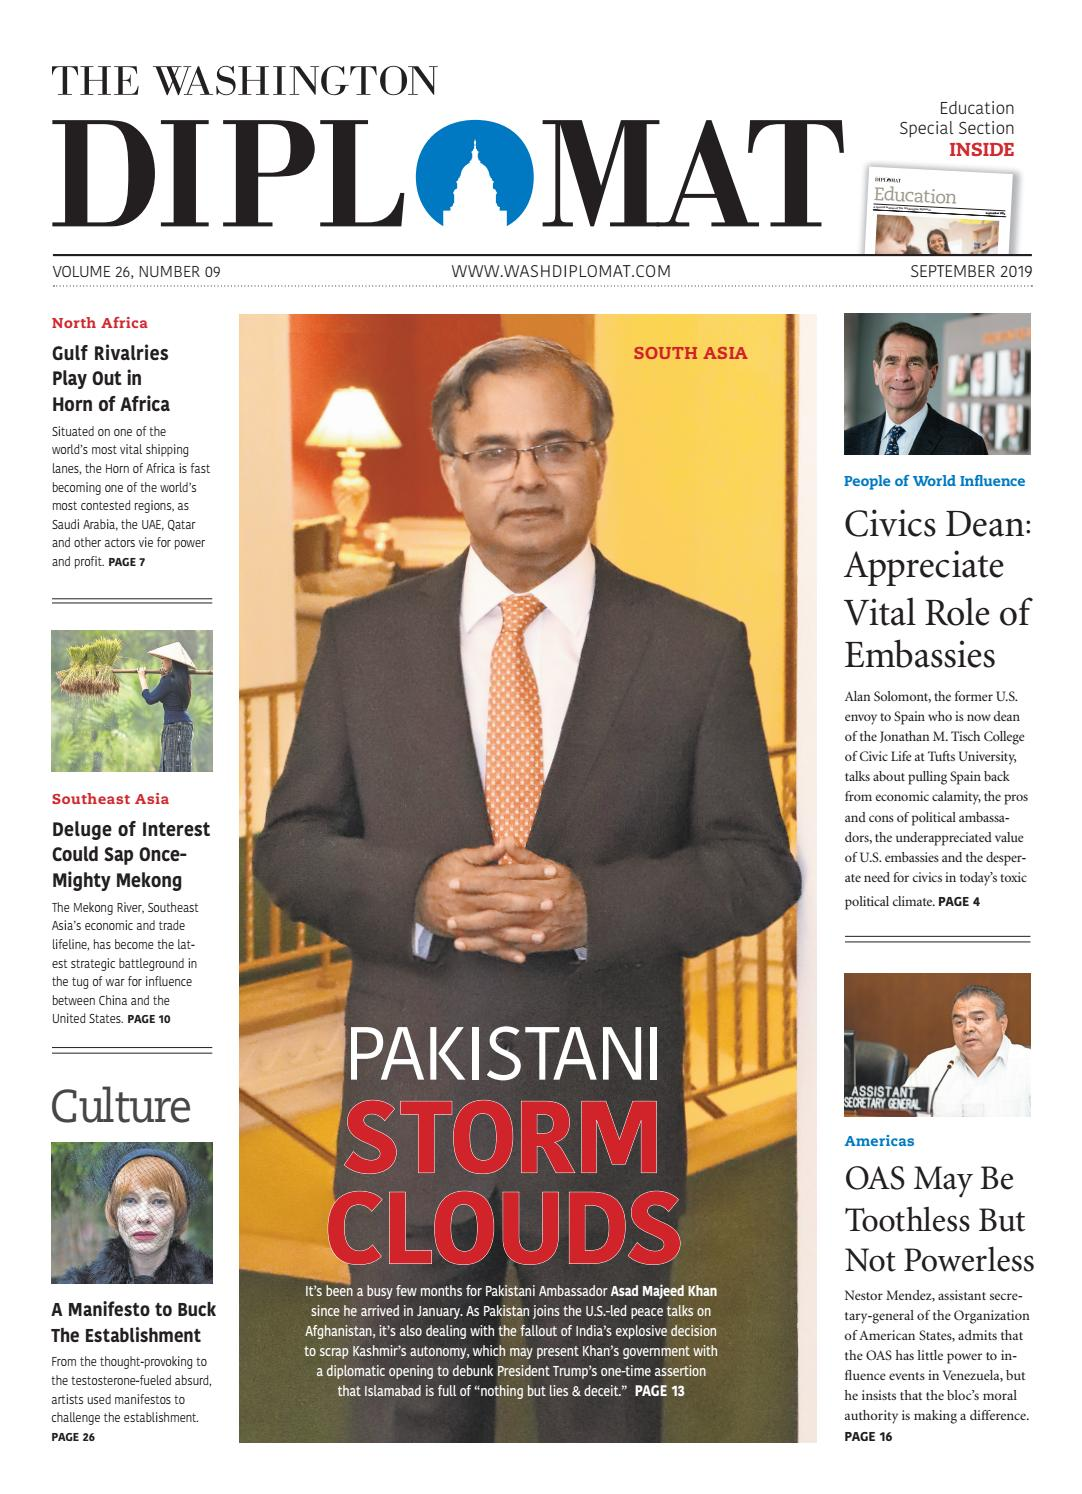 The Washington Diplomat - September 2019 by The Washington